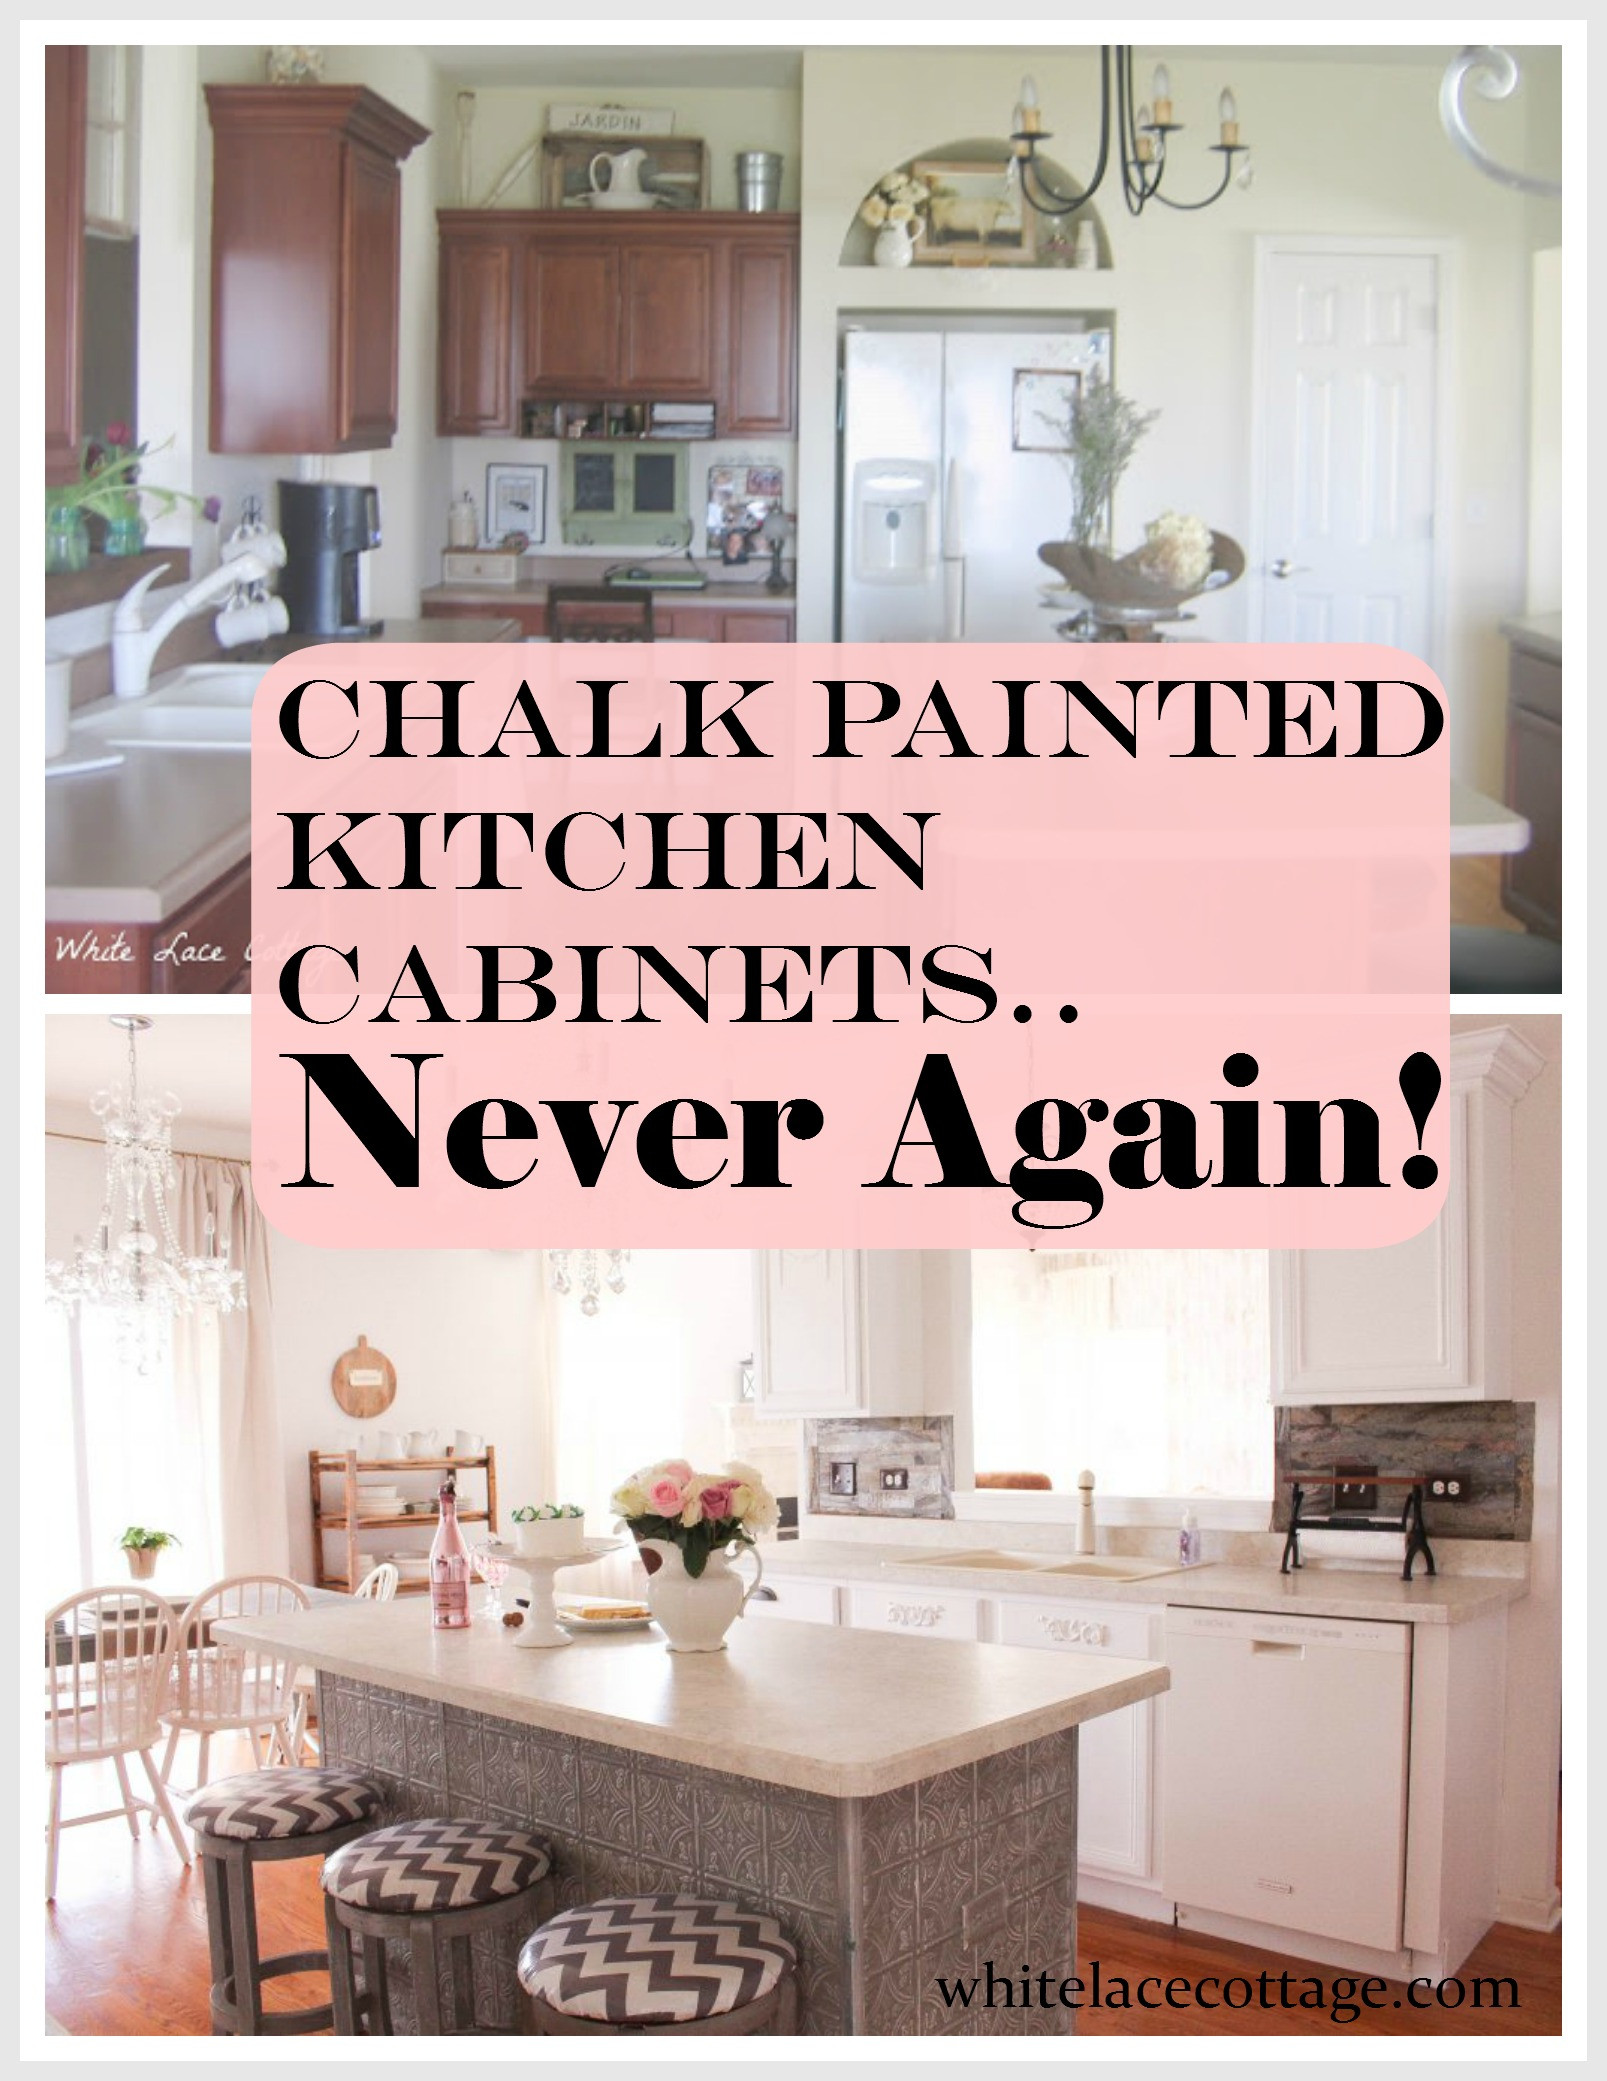 Chalk Paint Kitchen Cabinets Before And After  Chalk Painted Kitchen Cabinets Never Again White Lace